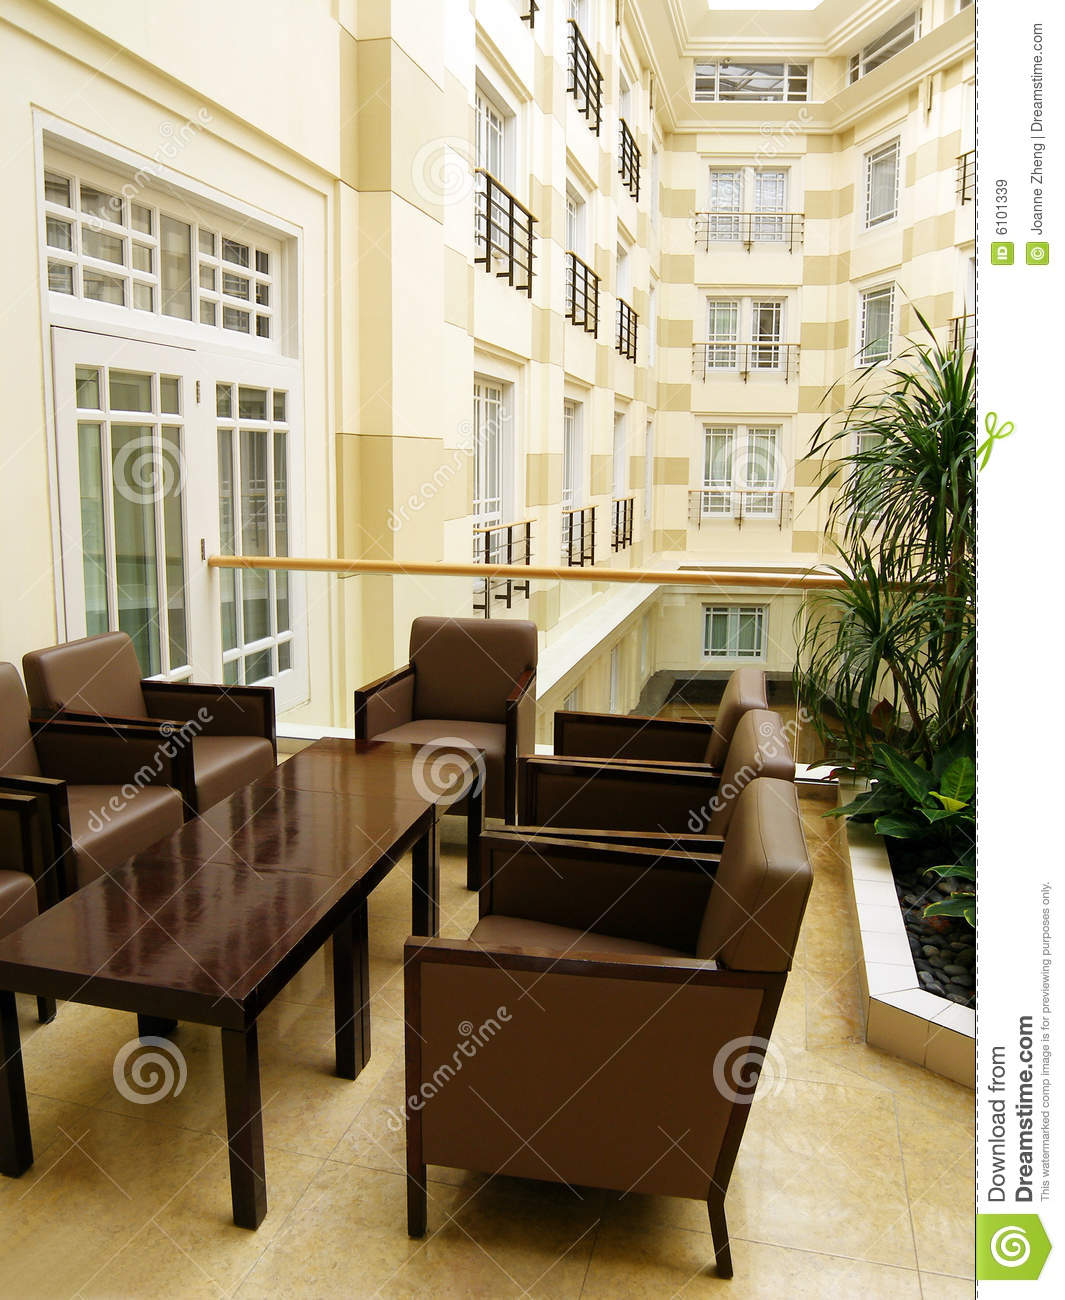 luxury hotel interior photo royalty free stock images - image: 6101339